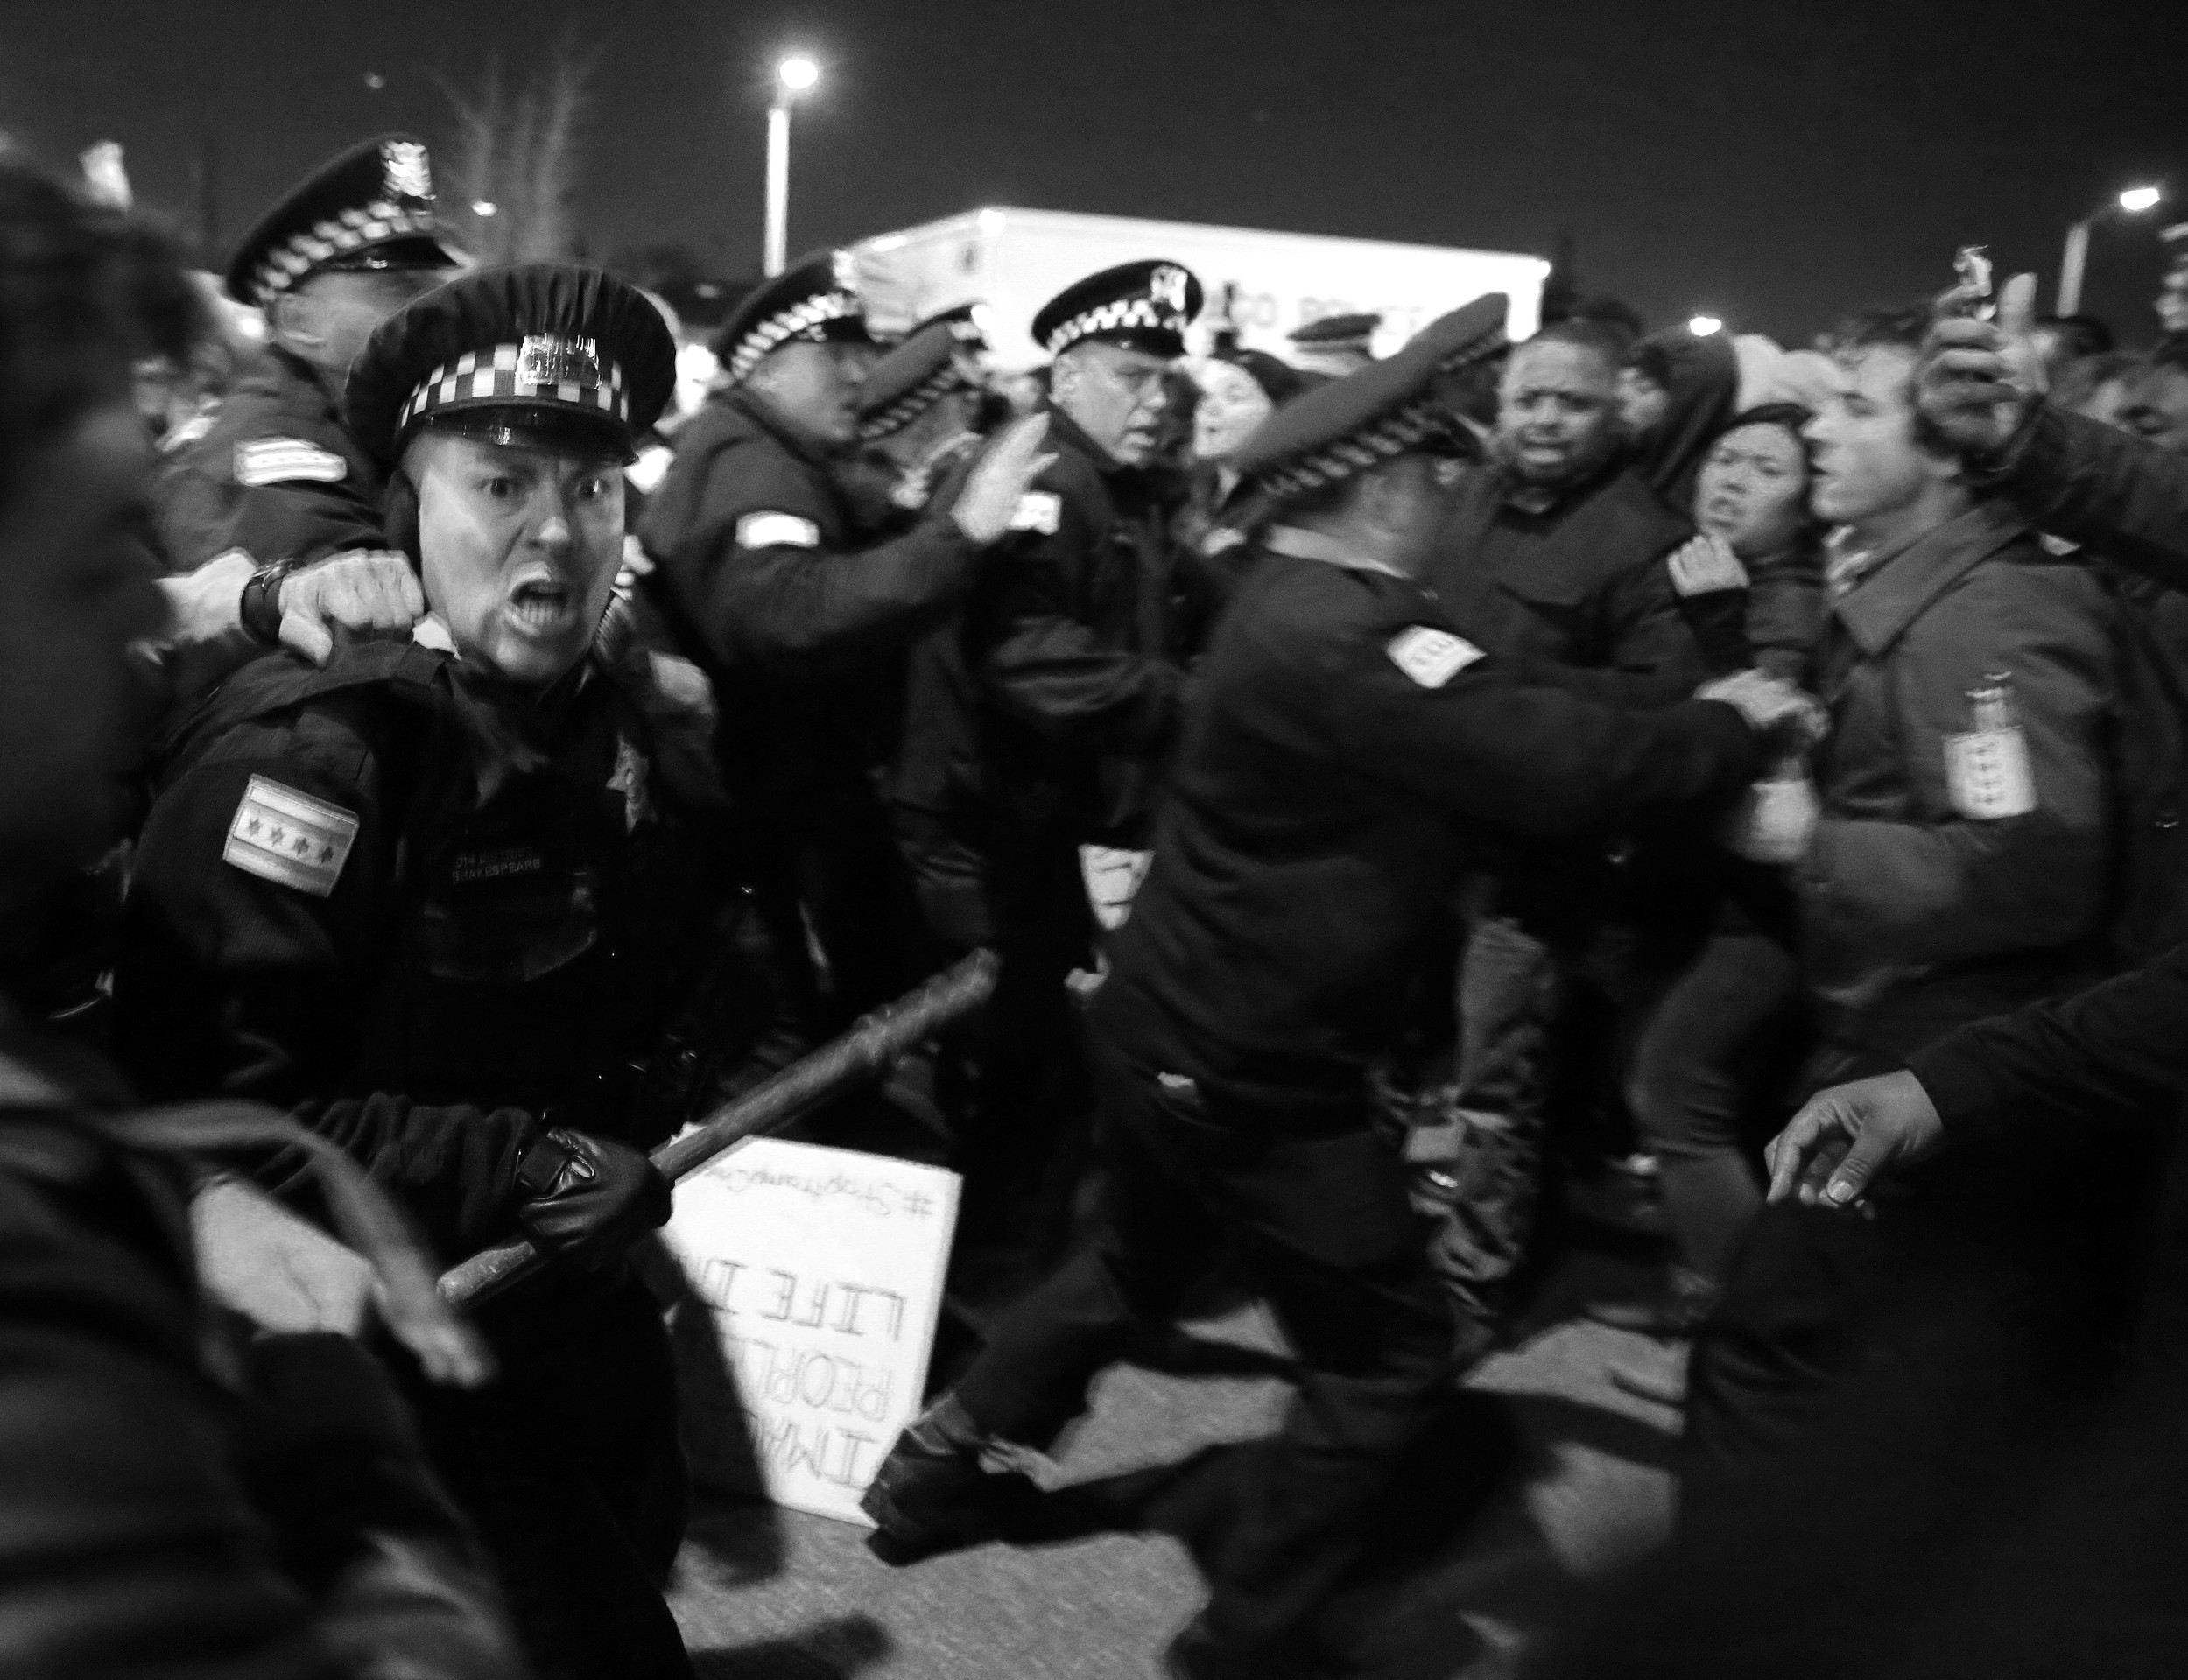 "Jonathon Miano of The Times in Munster, Ind., won first place for ""Protests for Laquan,"" a photo of a confrontation between Chicago police and protesters."